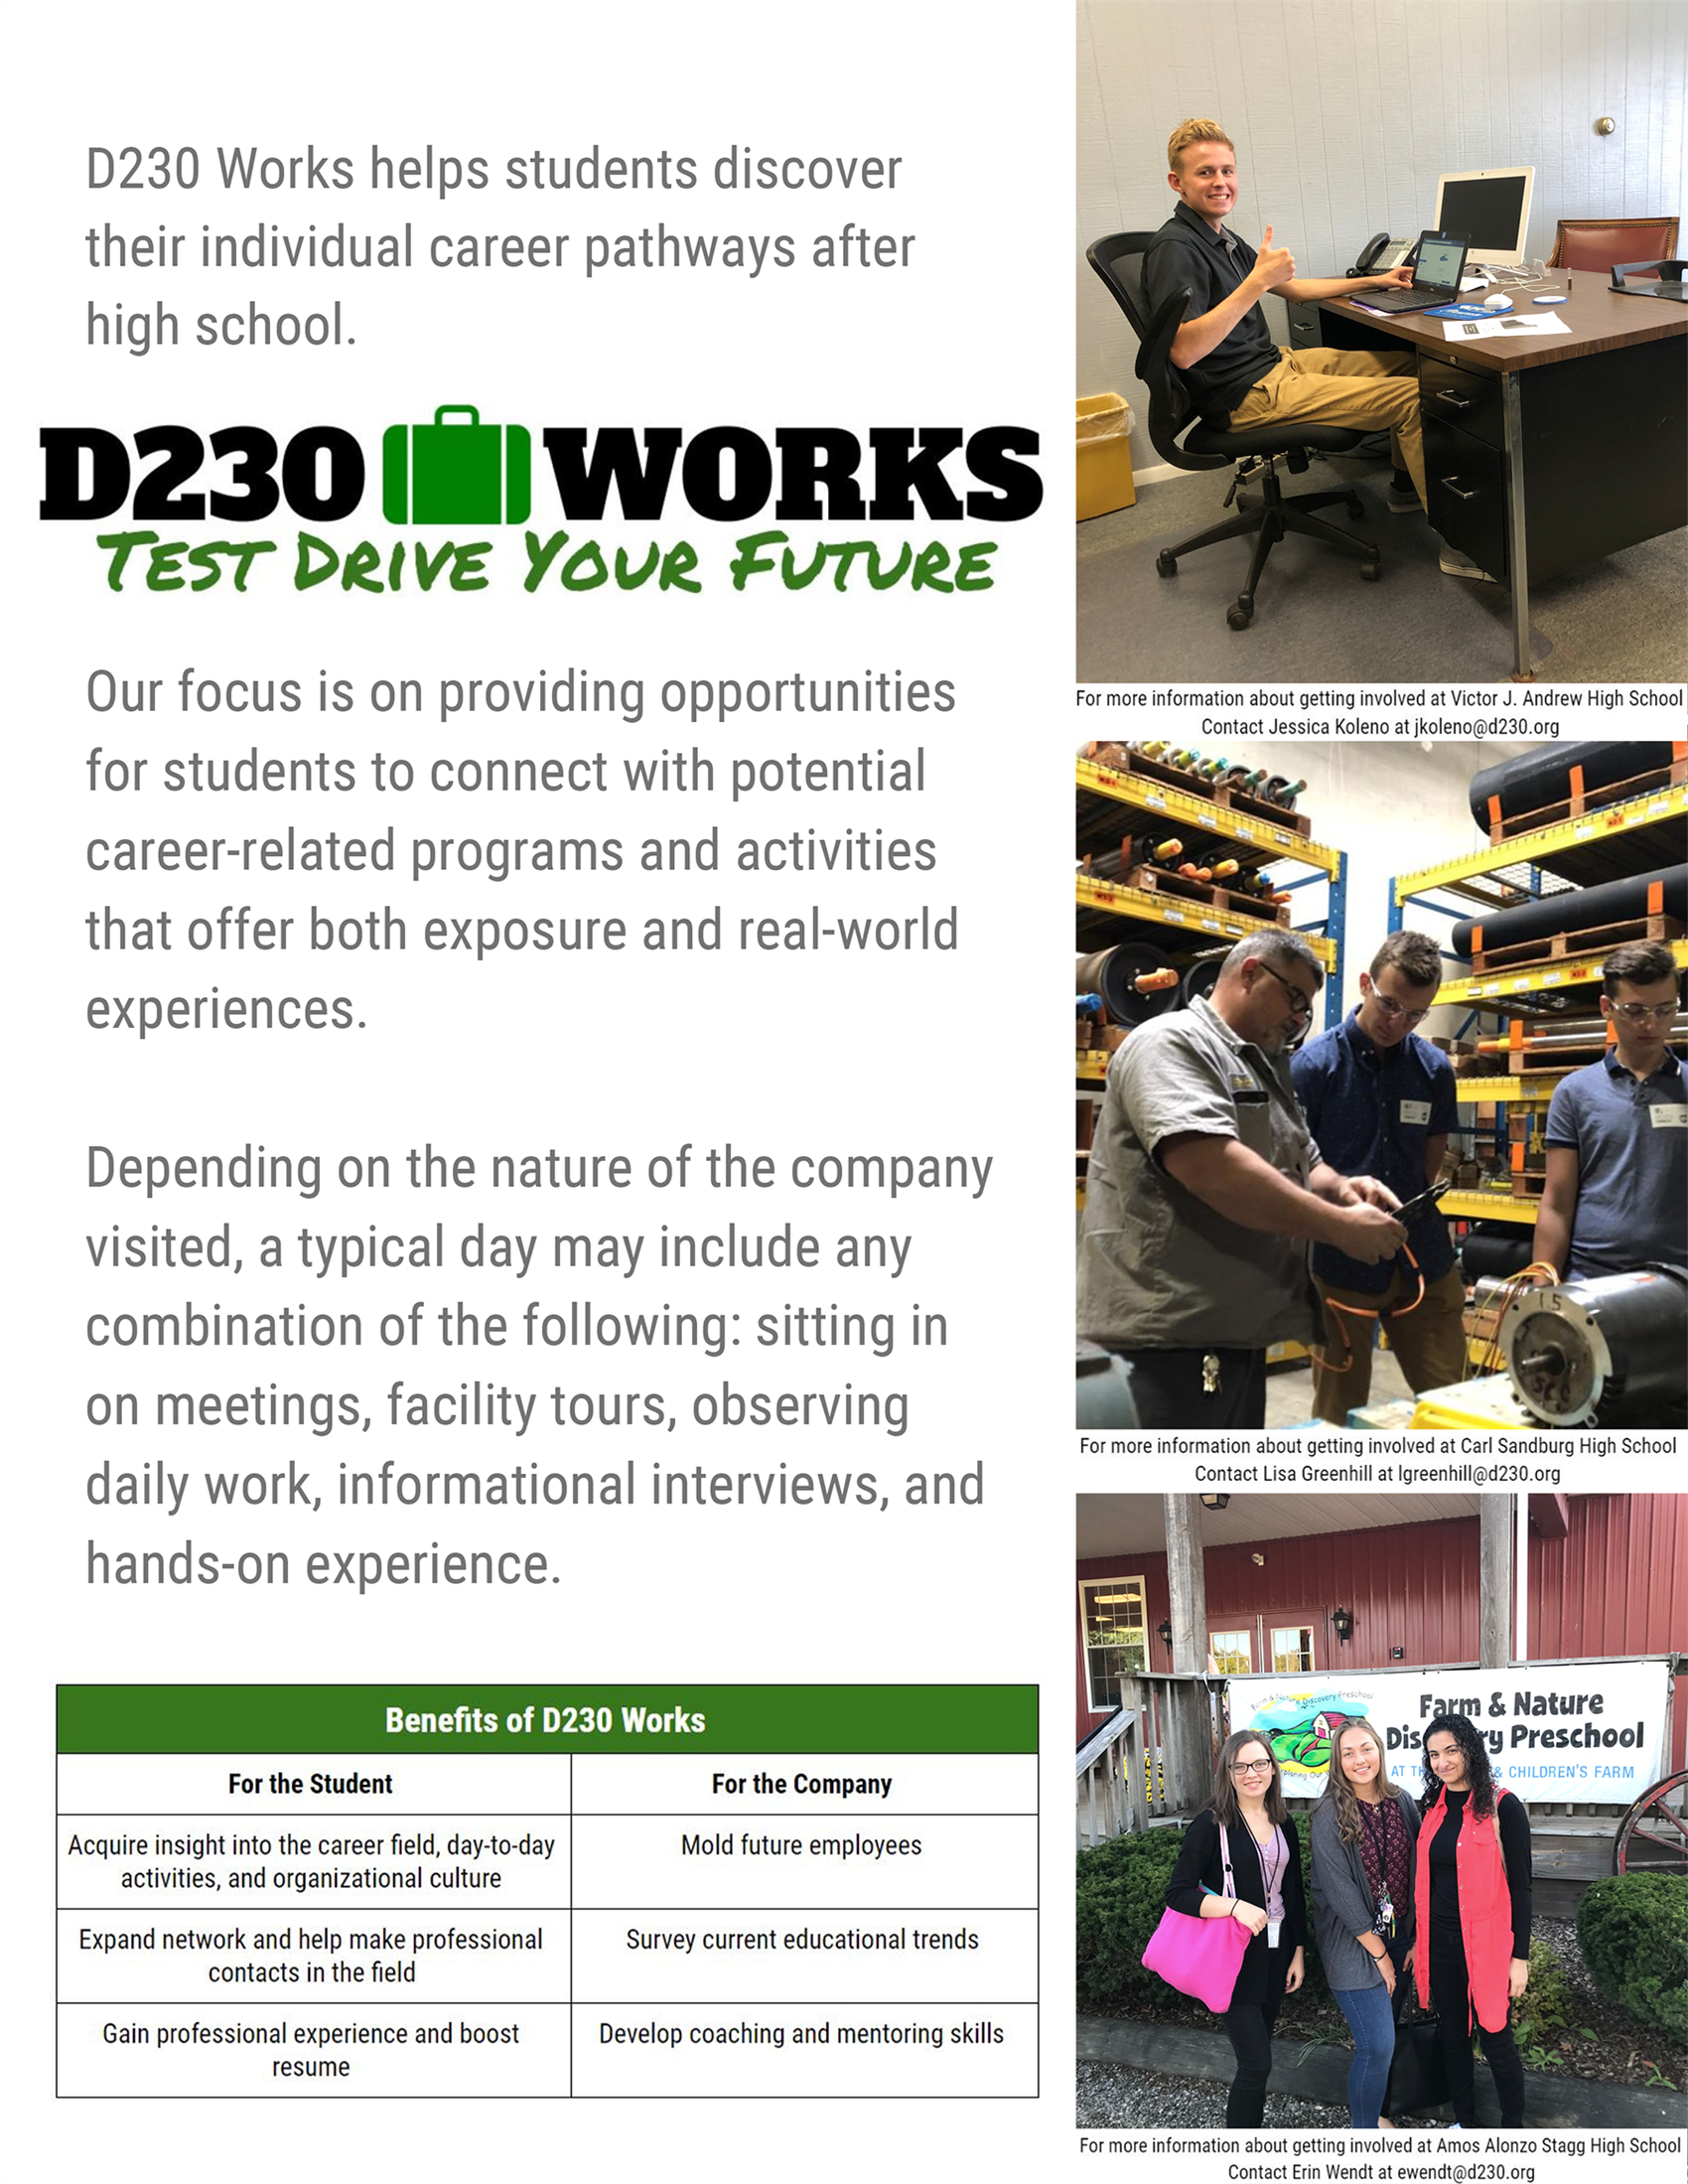 Benefits of D230Works